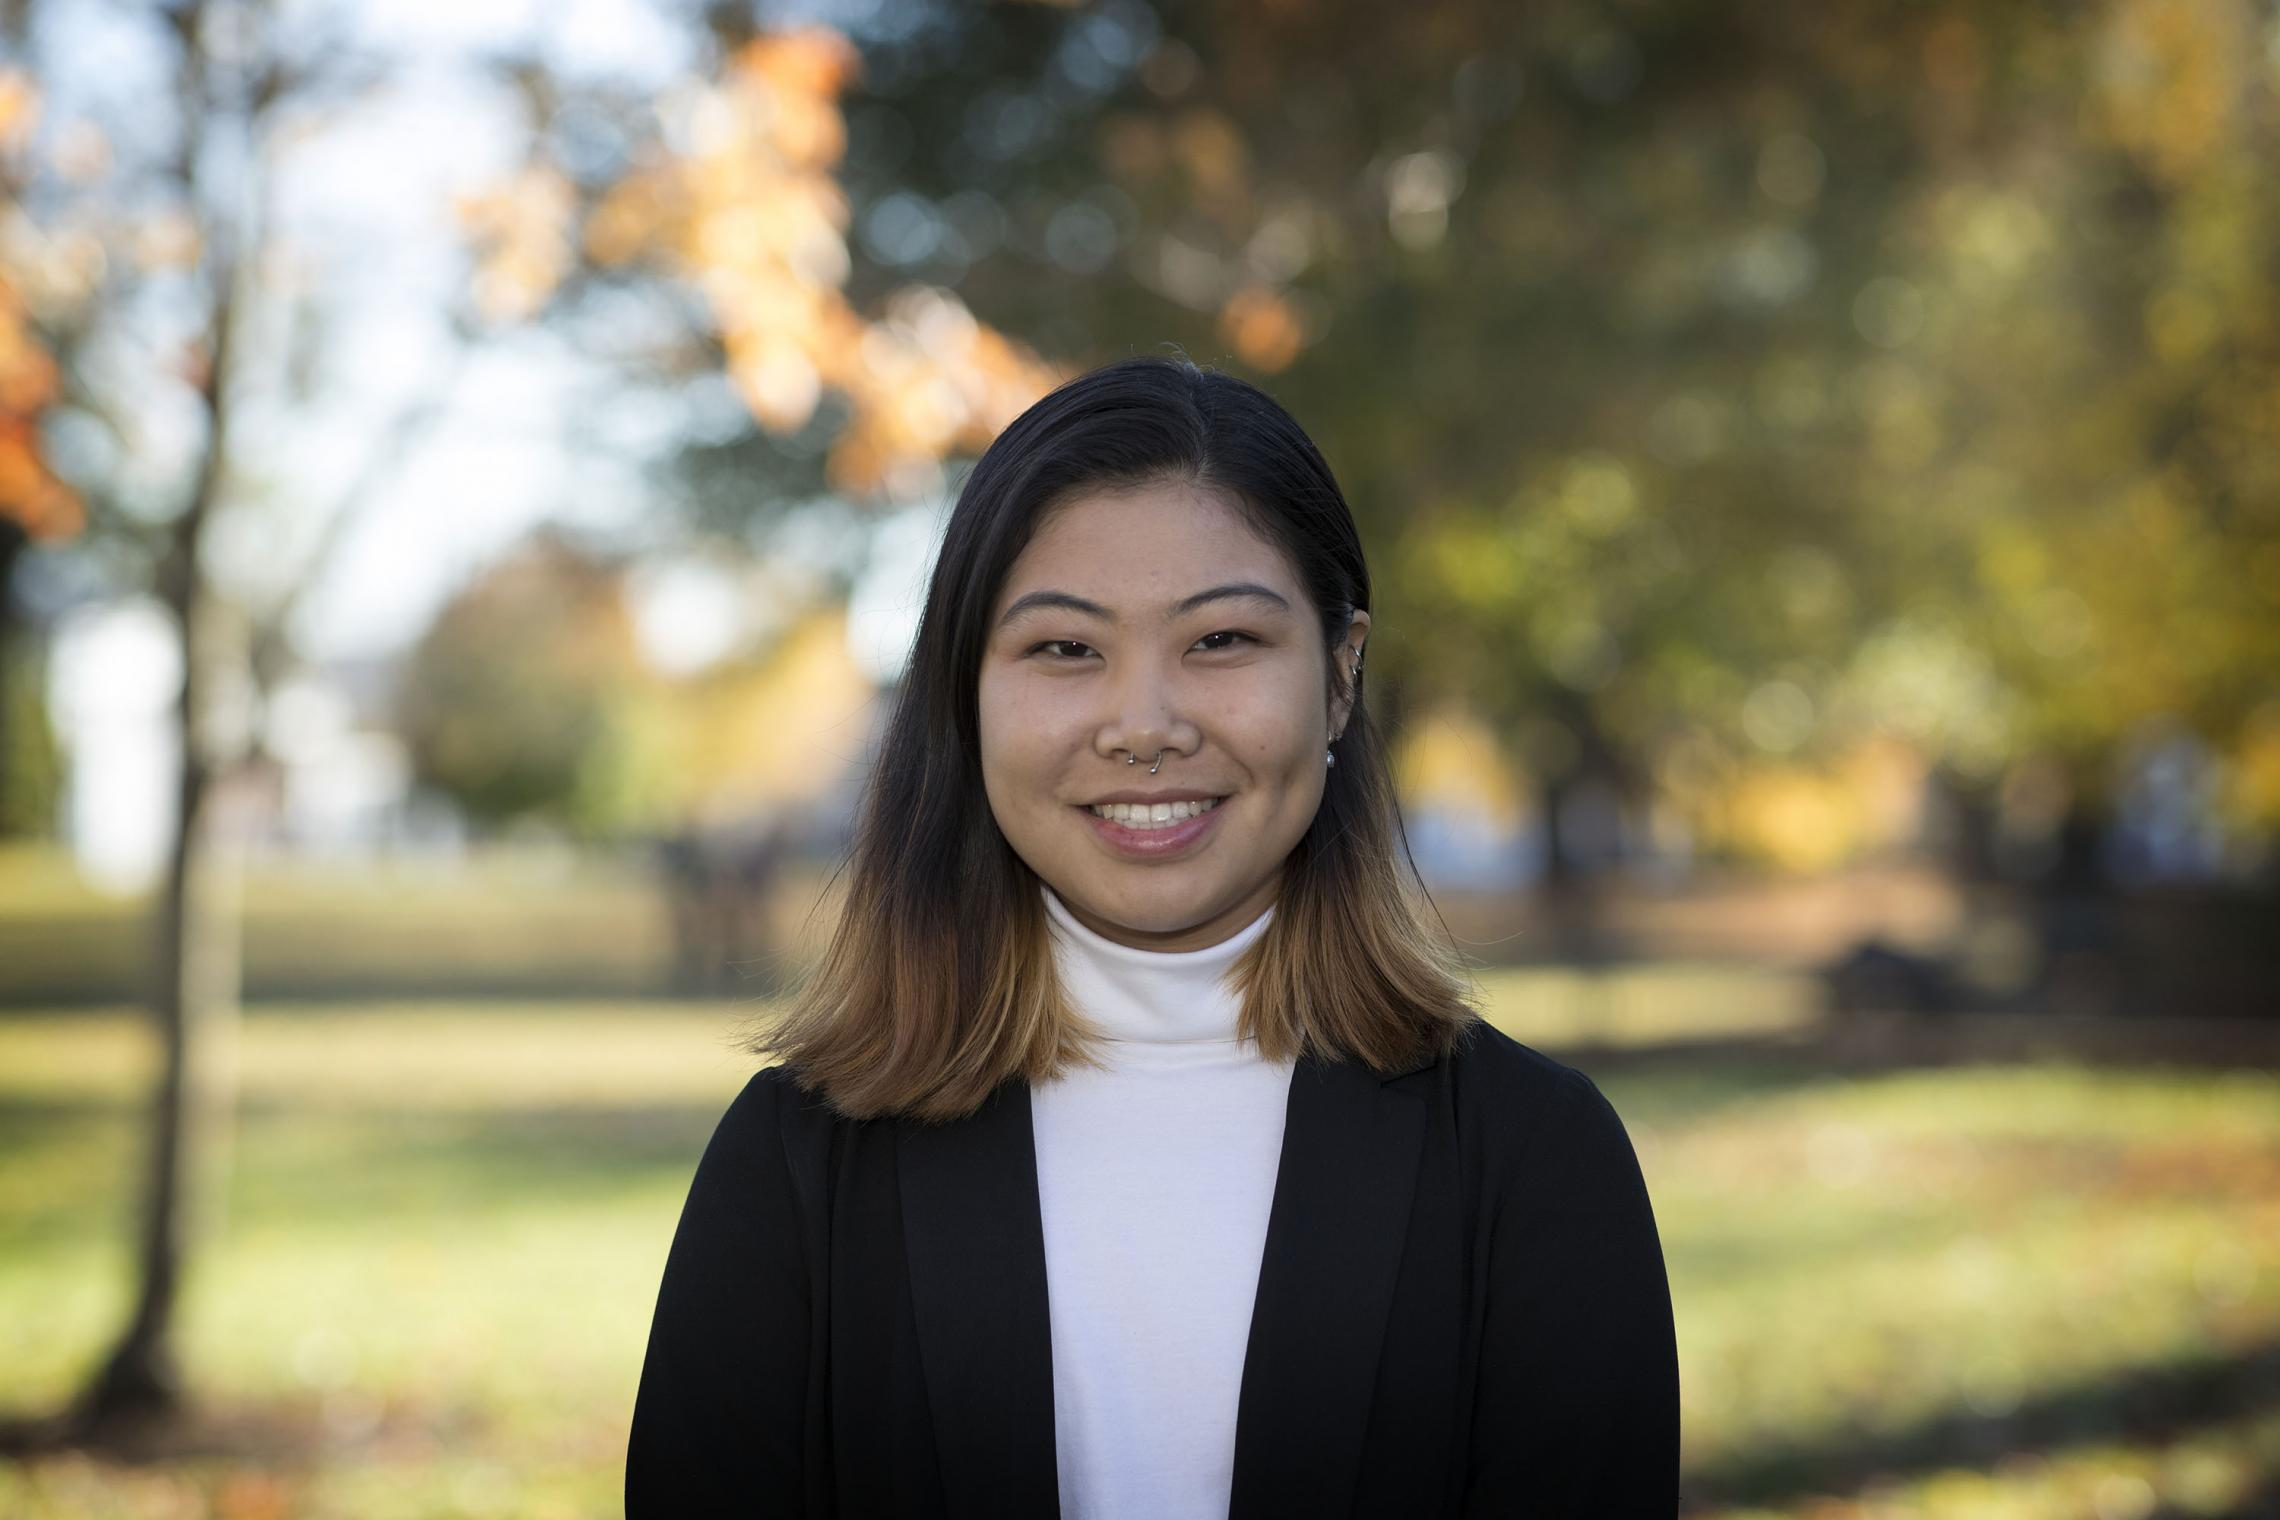 UVA's latest Rhodes Scholar Eileen Ying's current research is at the intersection of Asian diasporic speculative fiction, queerness and biopolitics. (Photo by Dan Addison, University Communications)